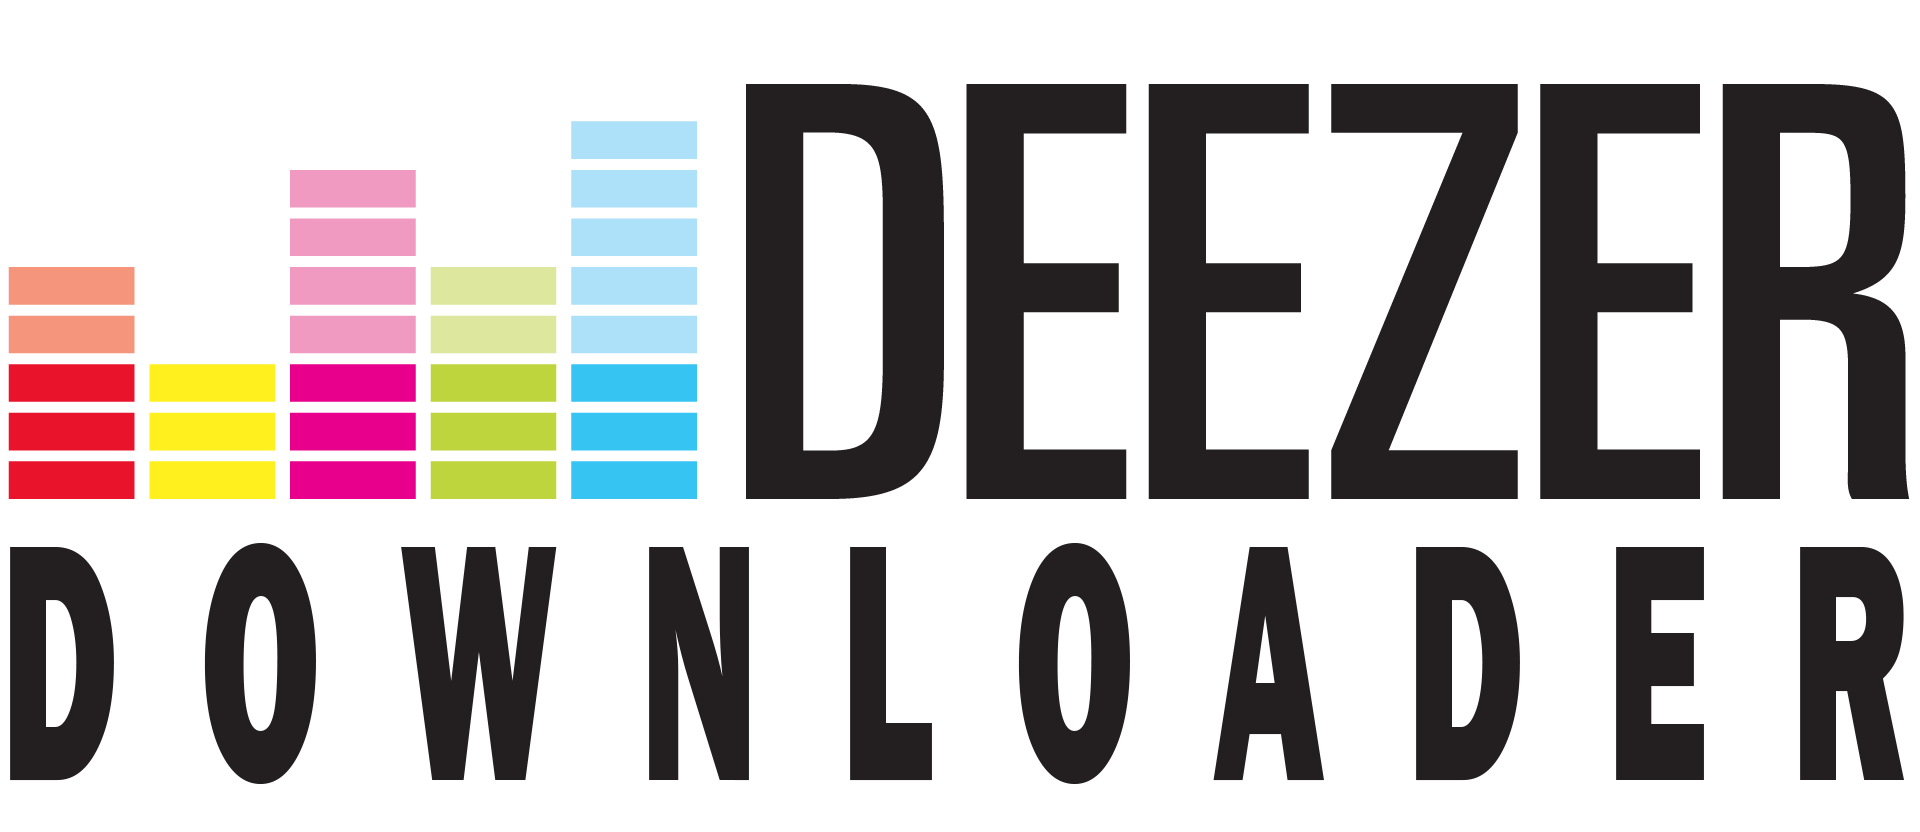 Download your favourite music - Deezer Logo Vector PNG